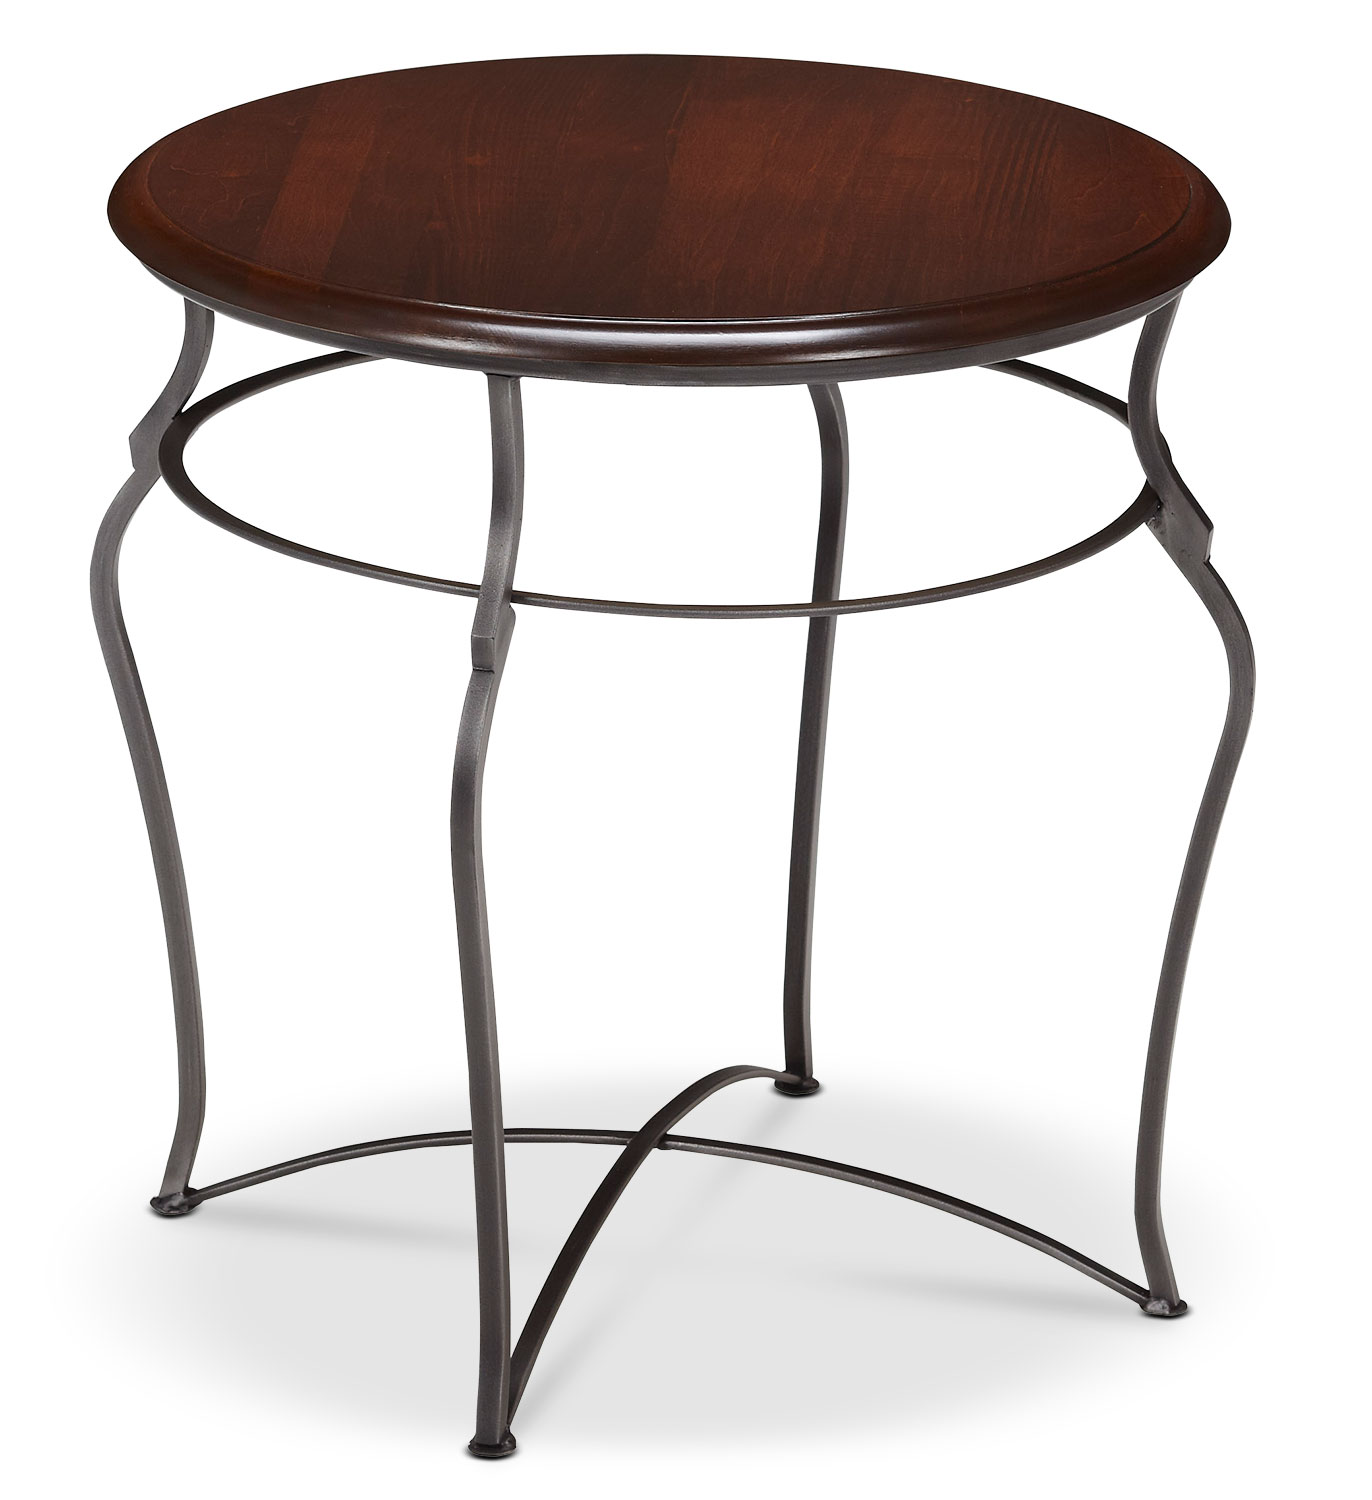 Online Only - Adele End Table - Brown Cherry with Pewter Base